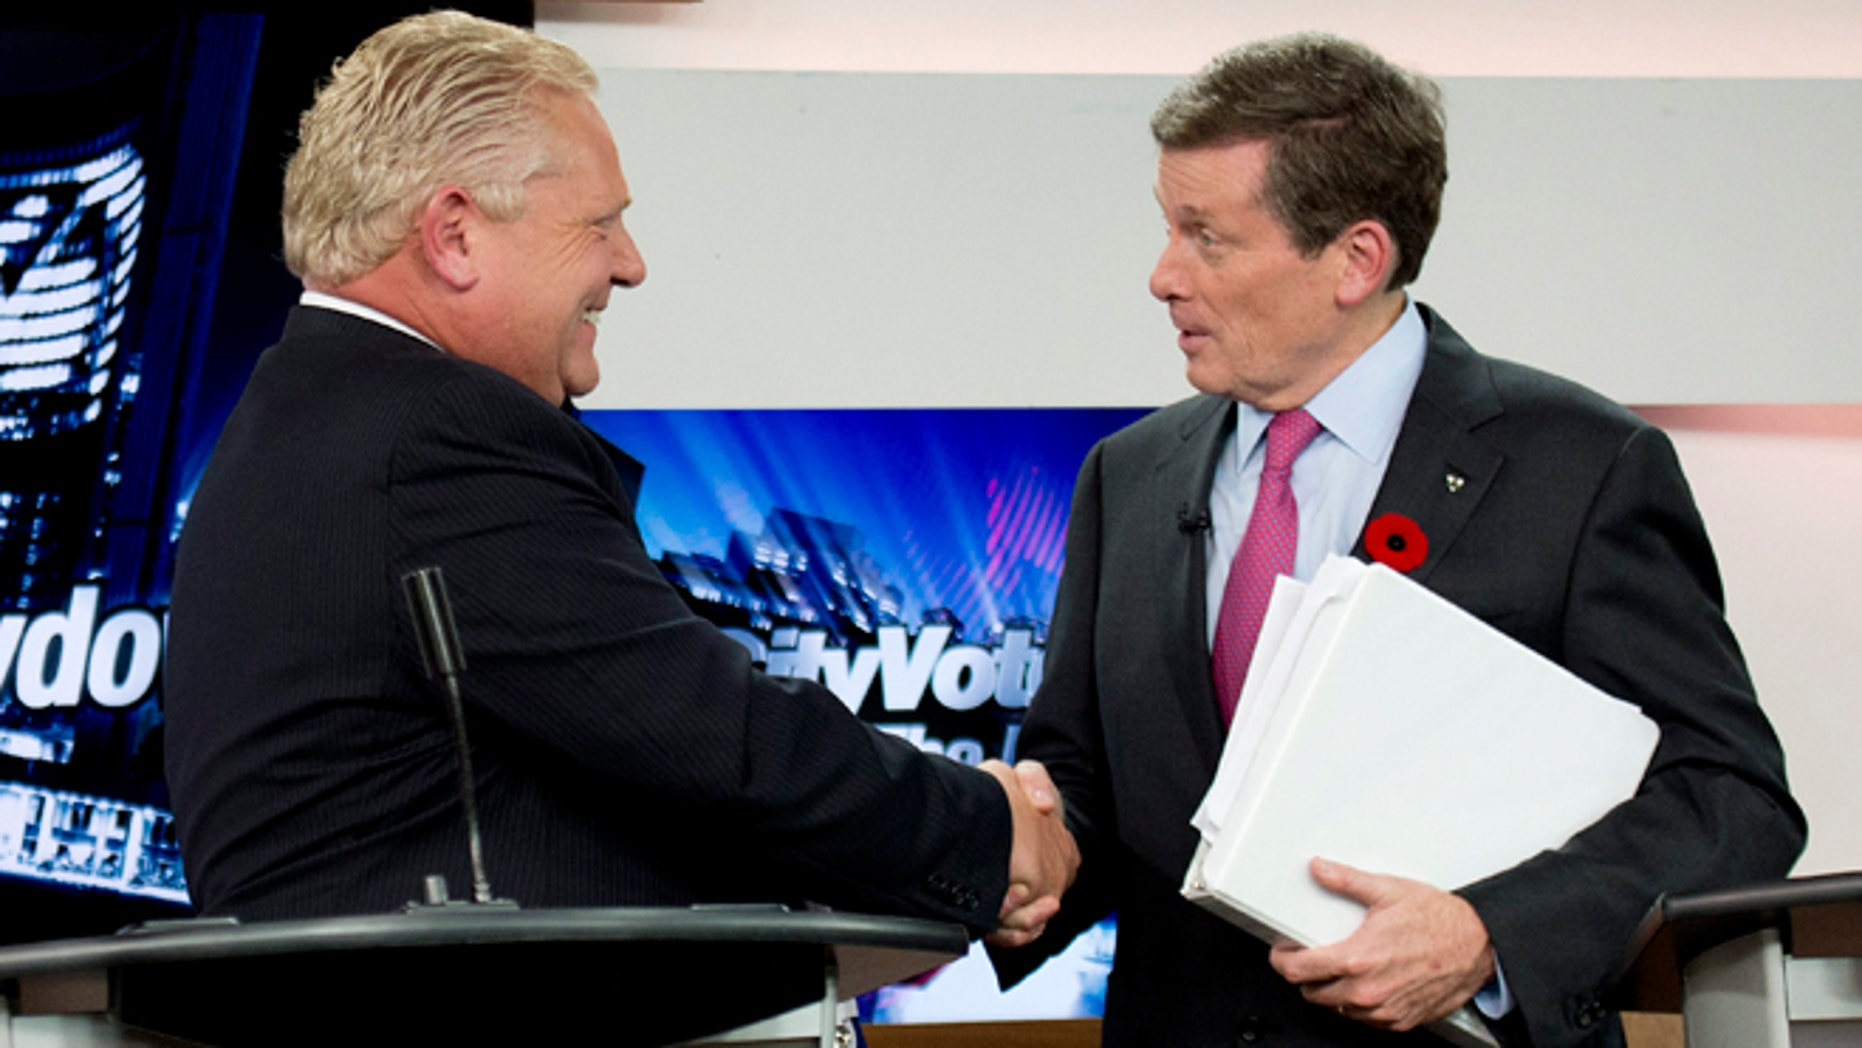 Oct. 23, 2014: Toronto mayoral candidates Doug Ford, left, and John Tory shake hands during the final mayoral debate for the Toronto mayoral race in Toronto.